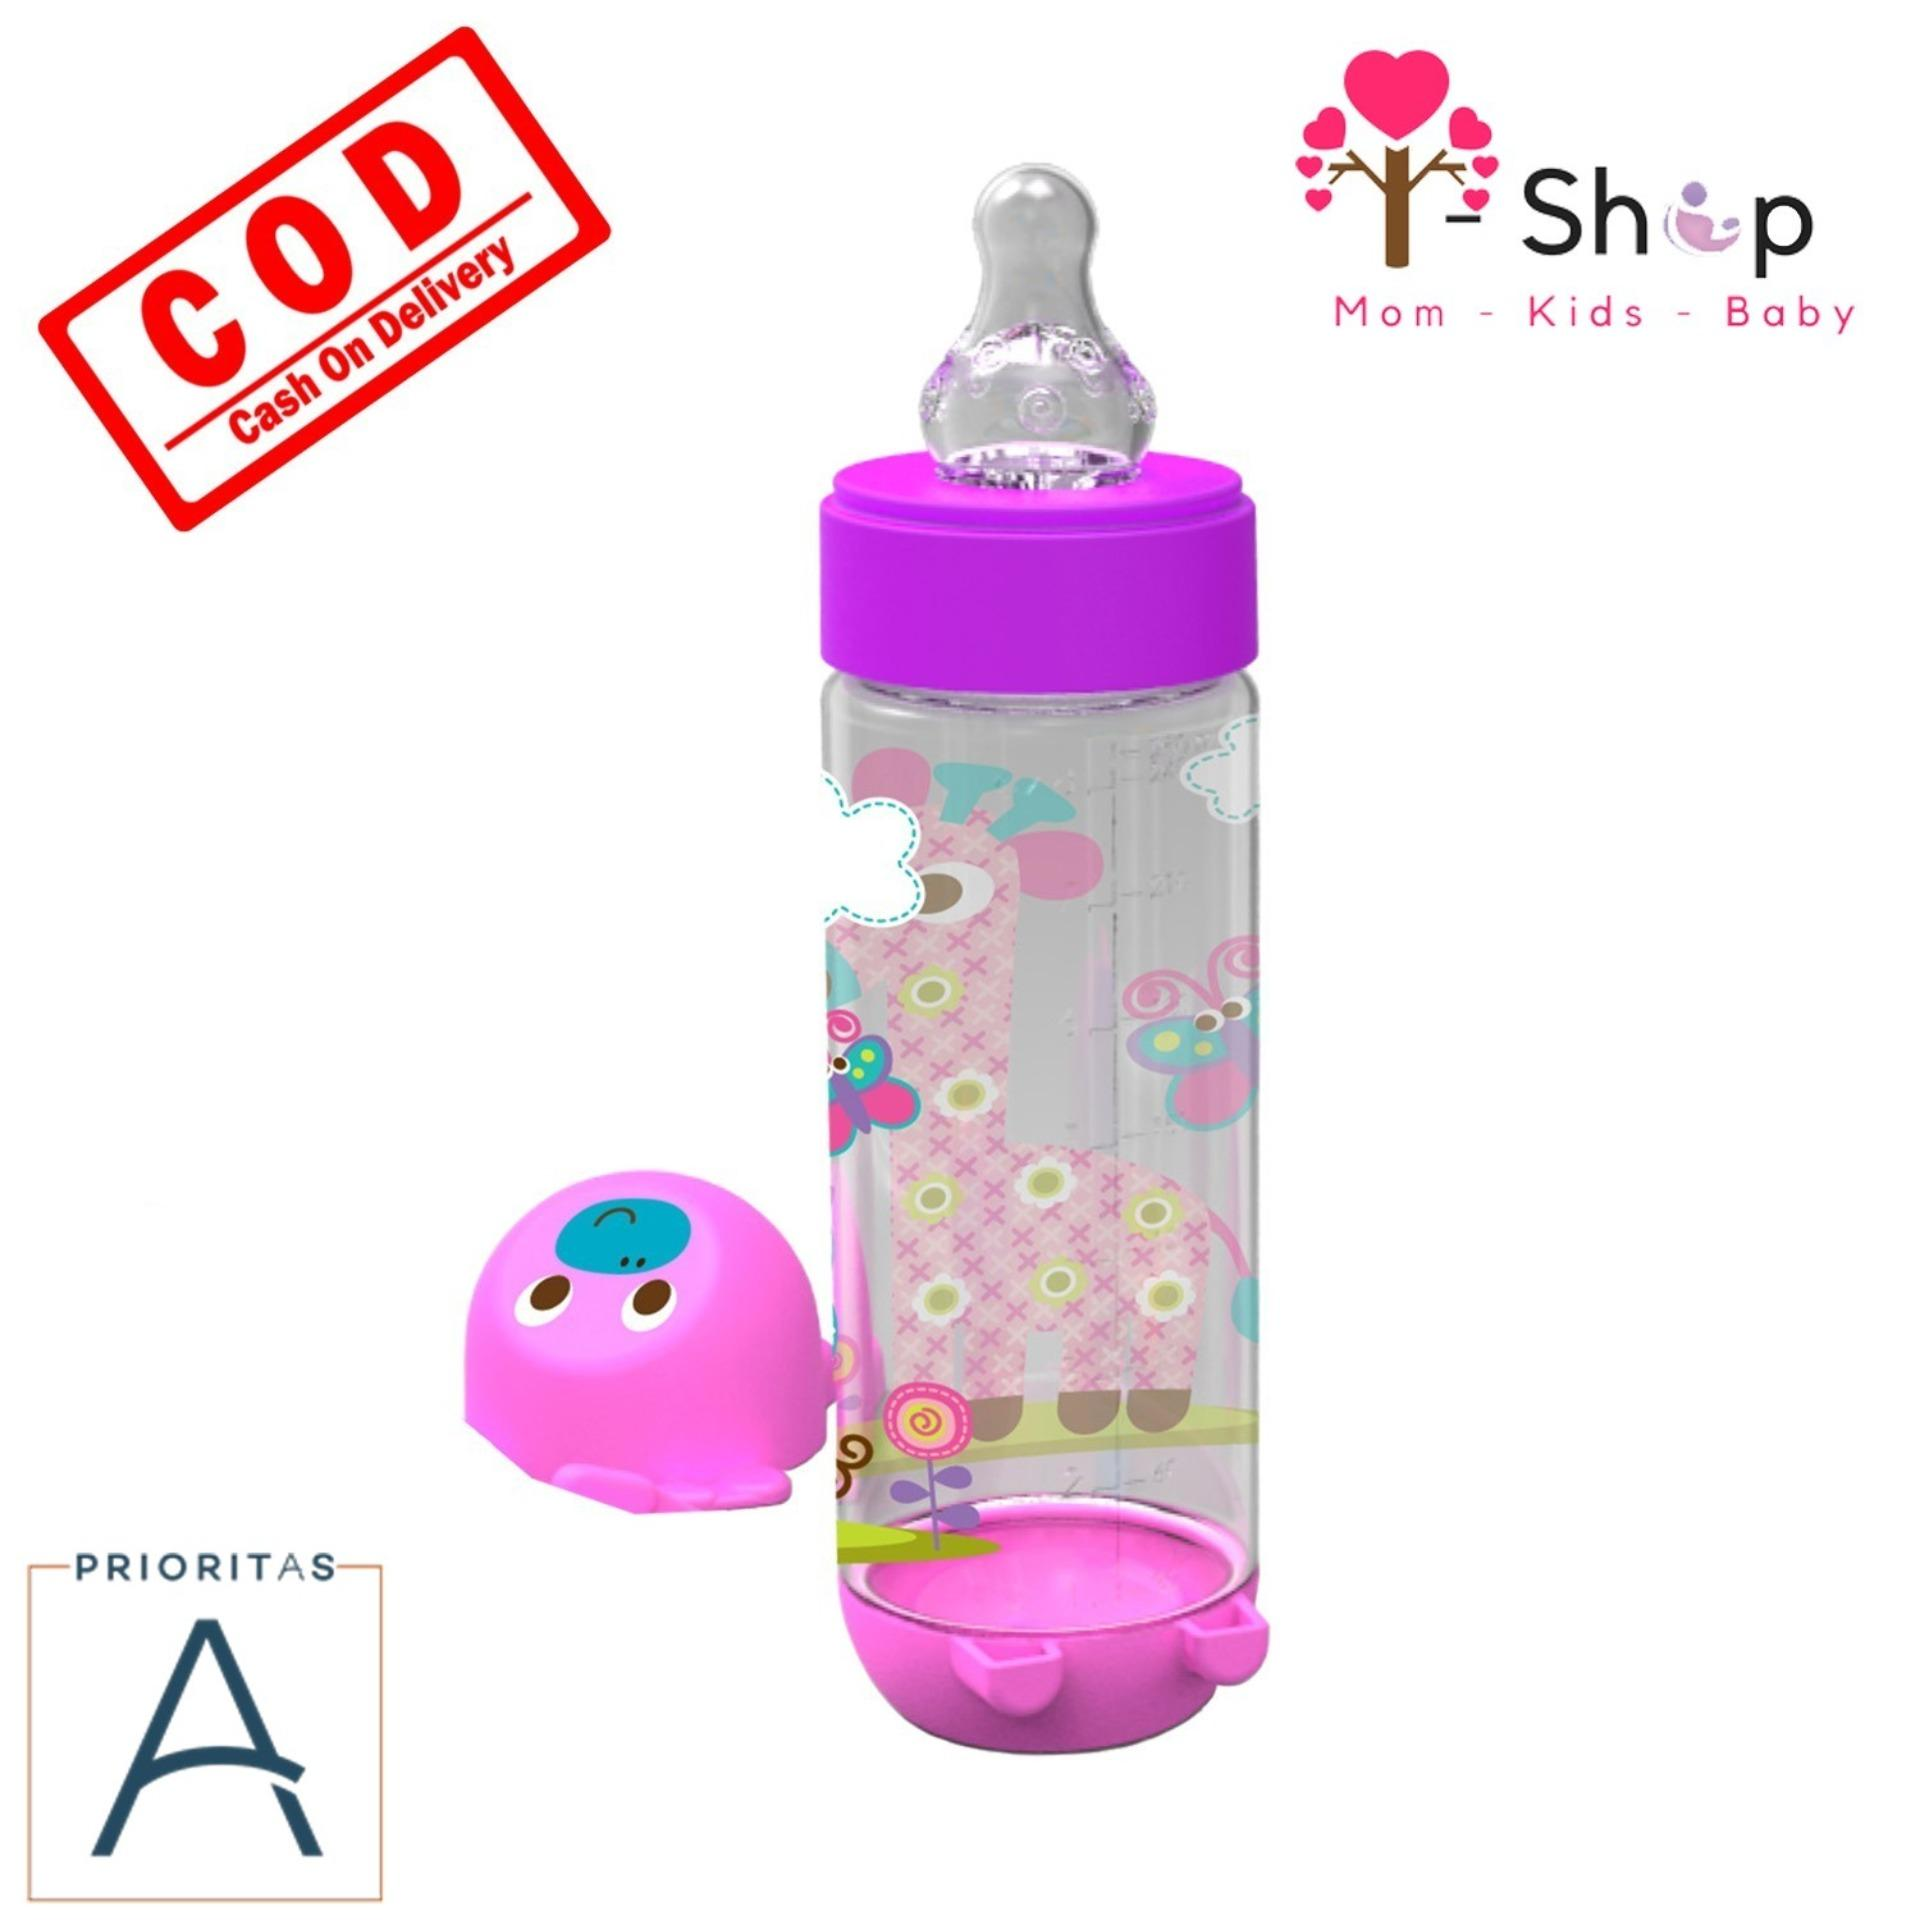 i-shop Baby Safe Botol Susu Bayi 250 ml / Botol Susu Bayi Karakter Binatang / Feeding Bottle 250 ml / AP002